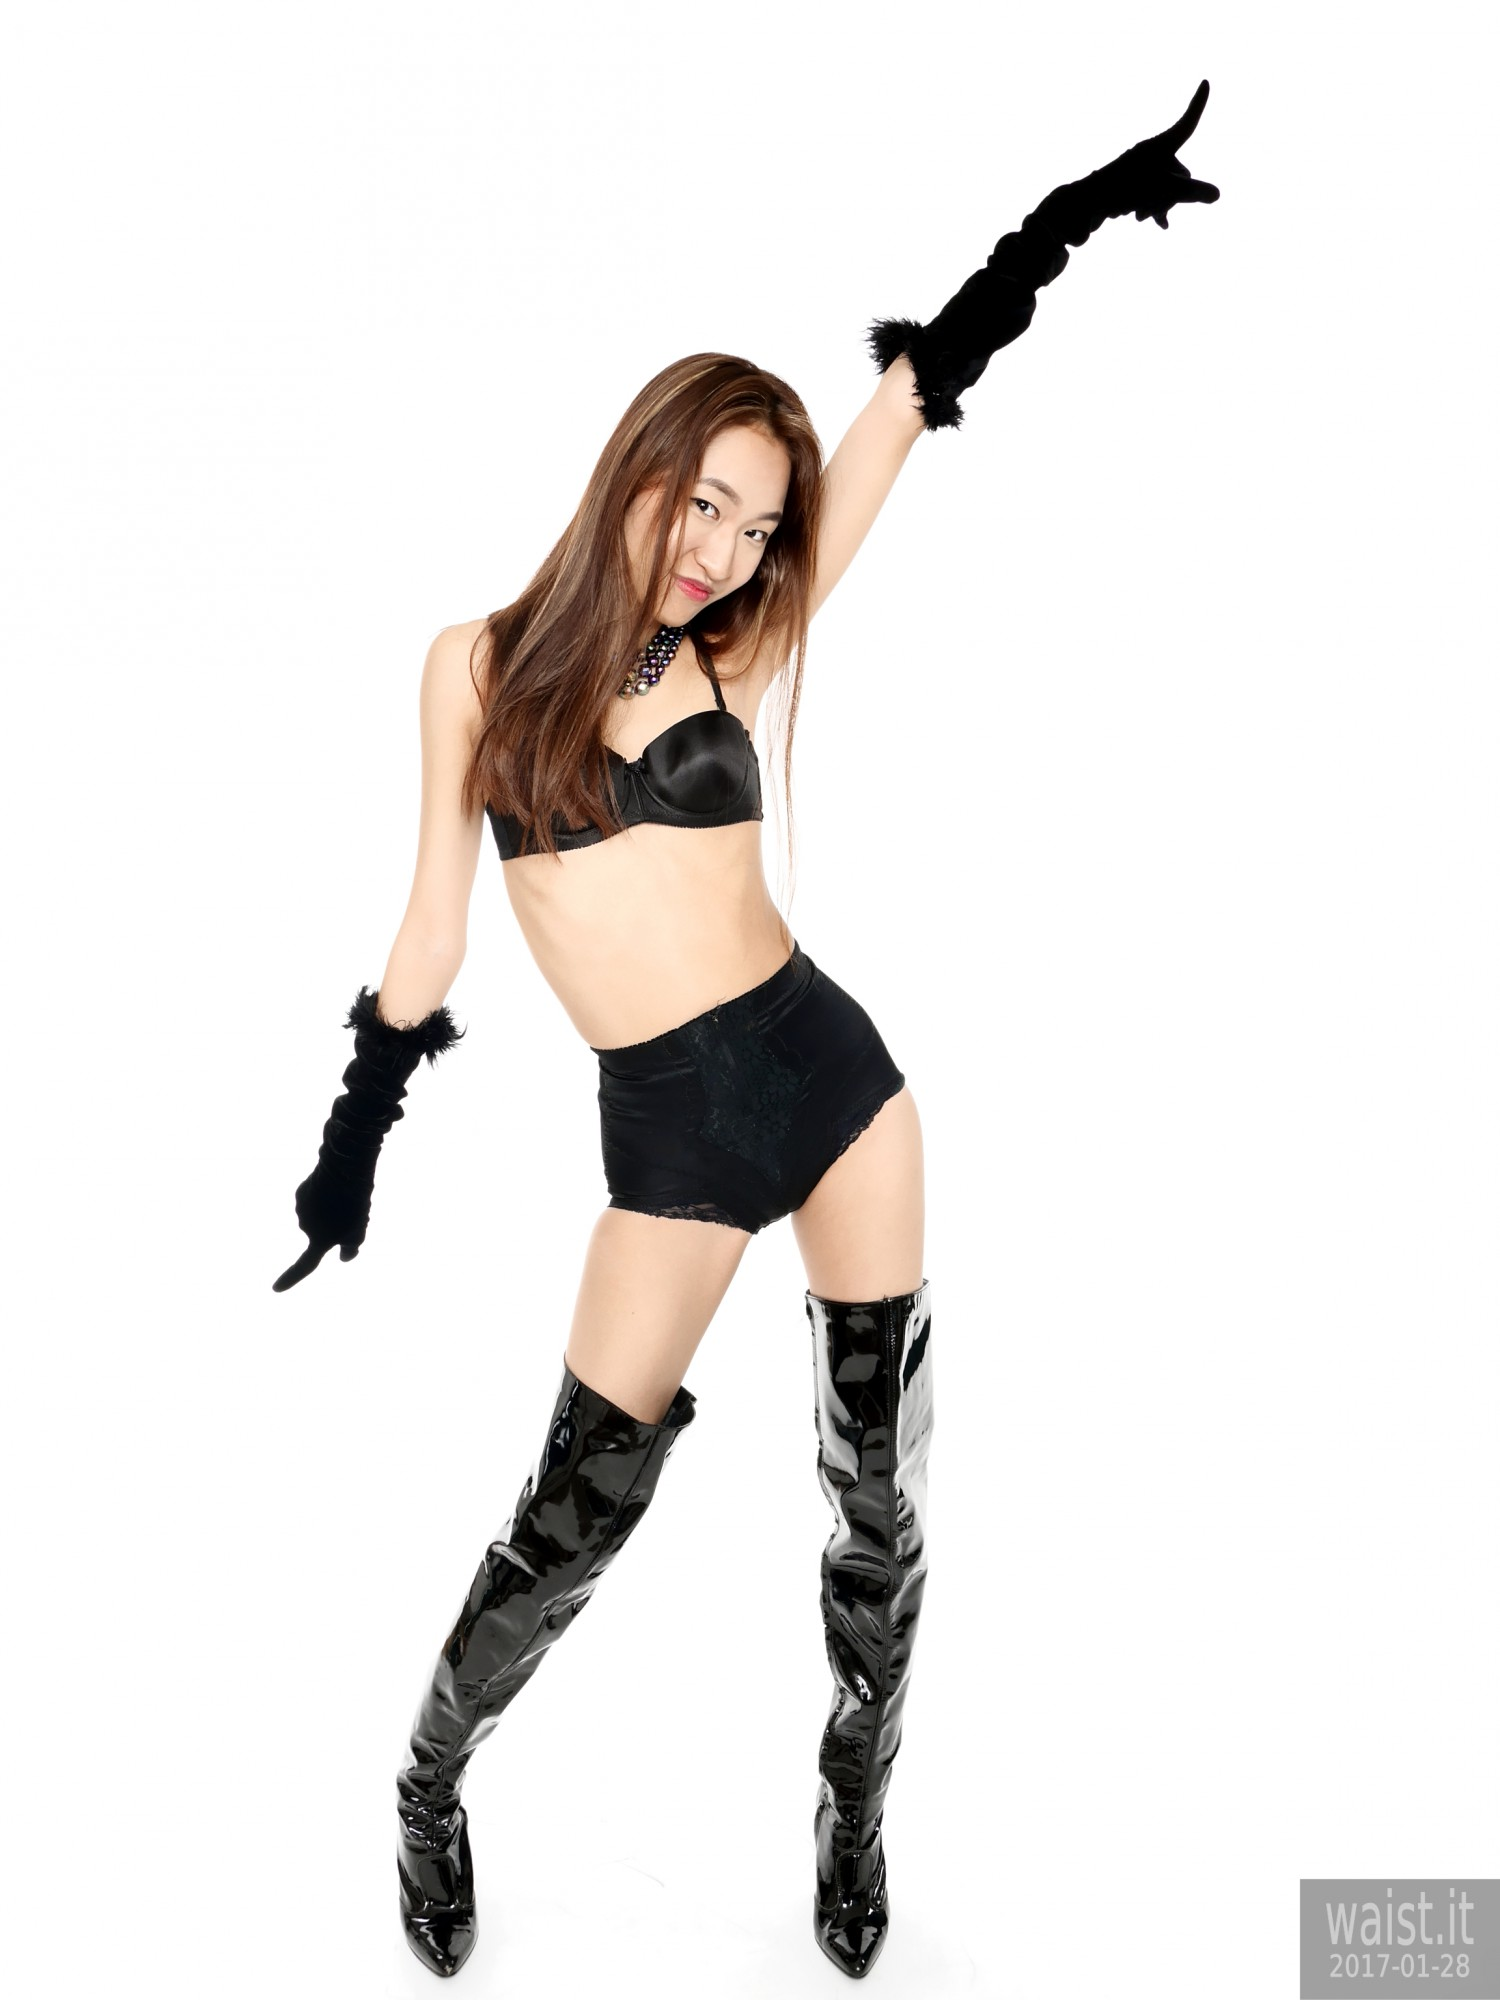 2017-01-28 Salina Pun black bra, girdle, opera gloves and patent leather thigh boots